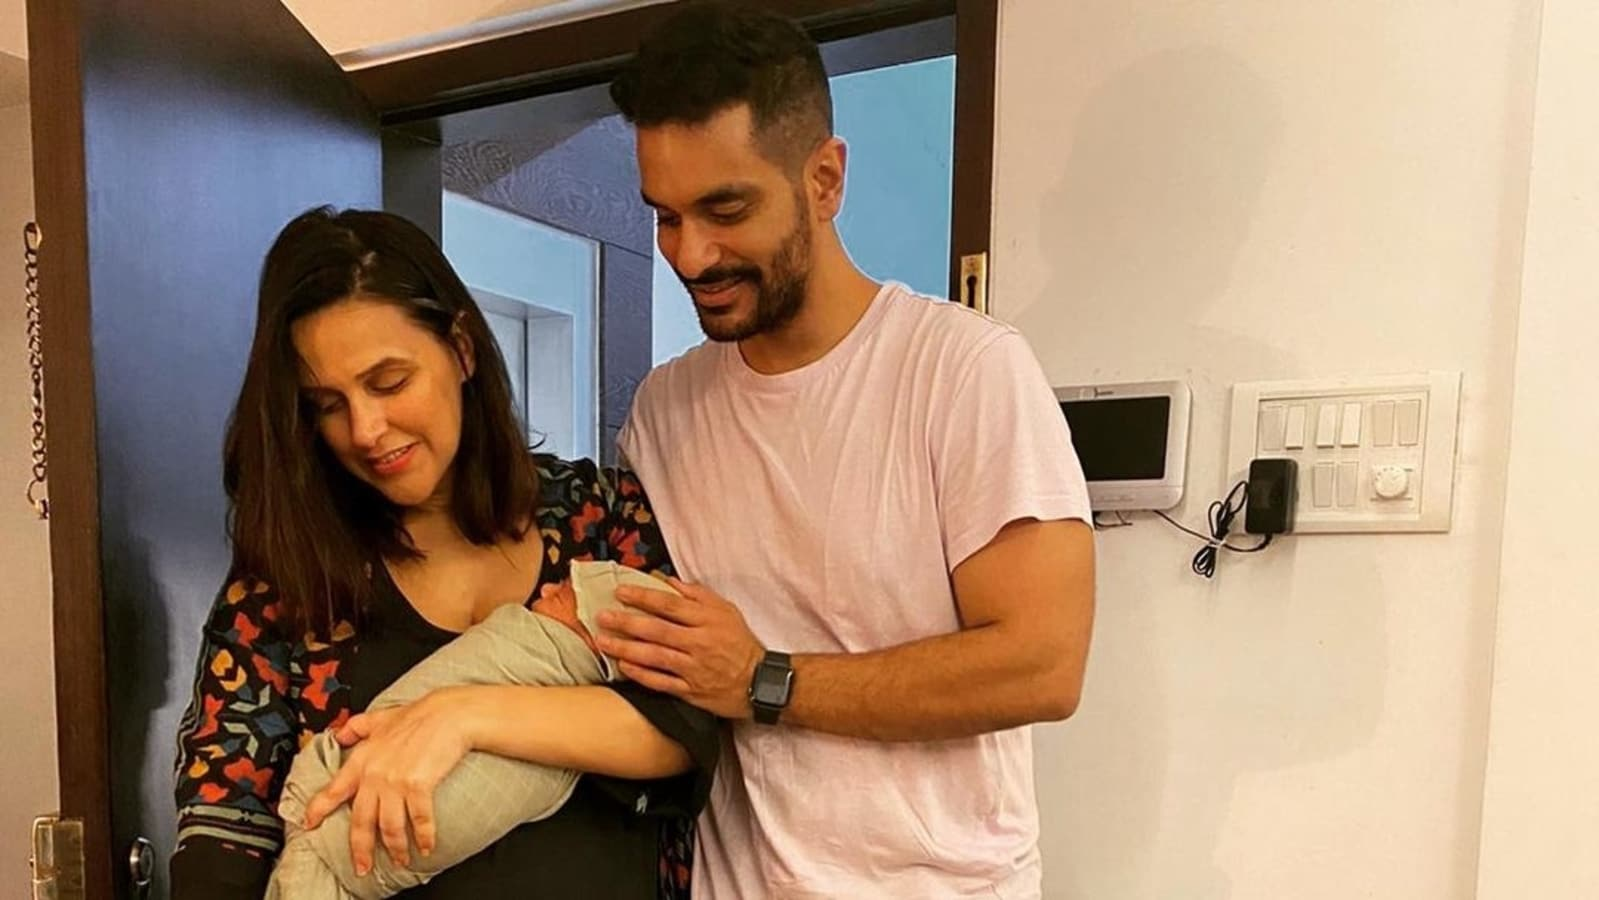 Neha Dhupia says she 'was in the middle of contractions' during shoot: 'Put the crown back on my head' -India News Cart